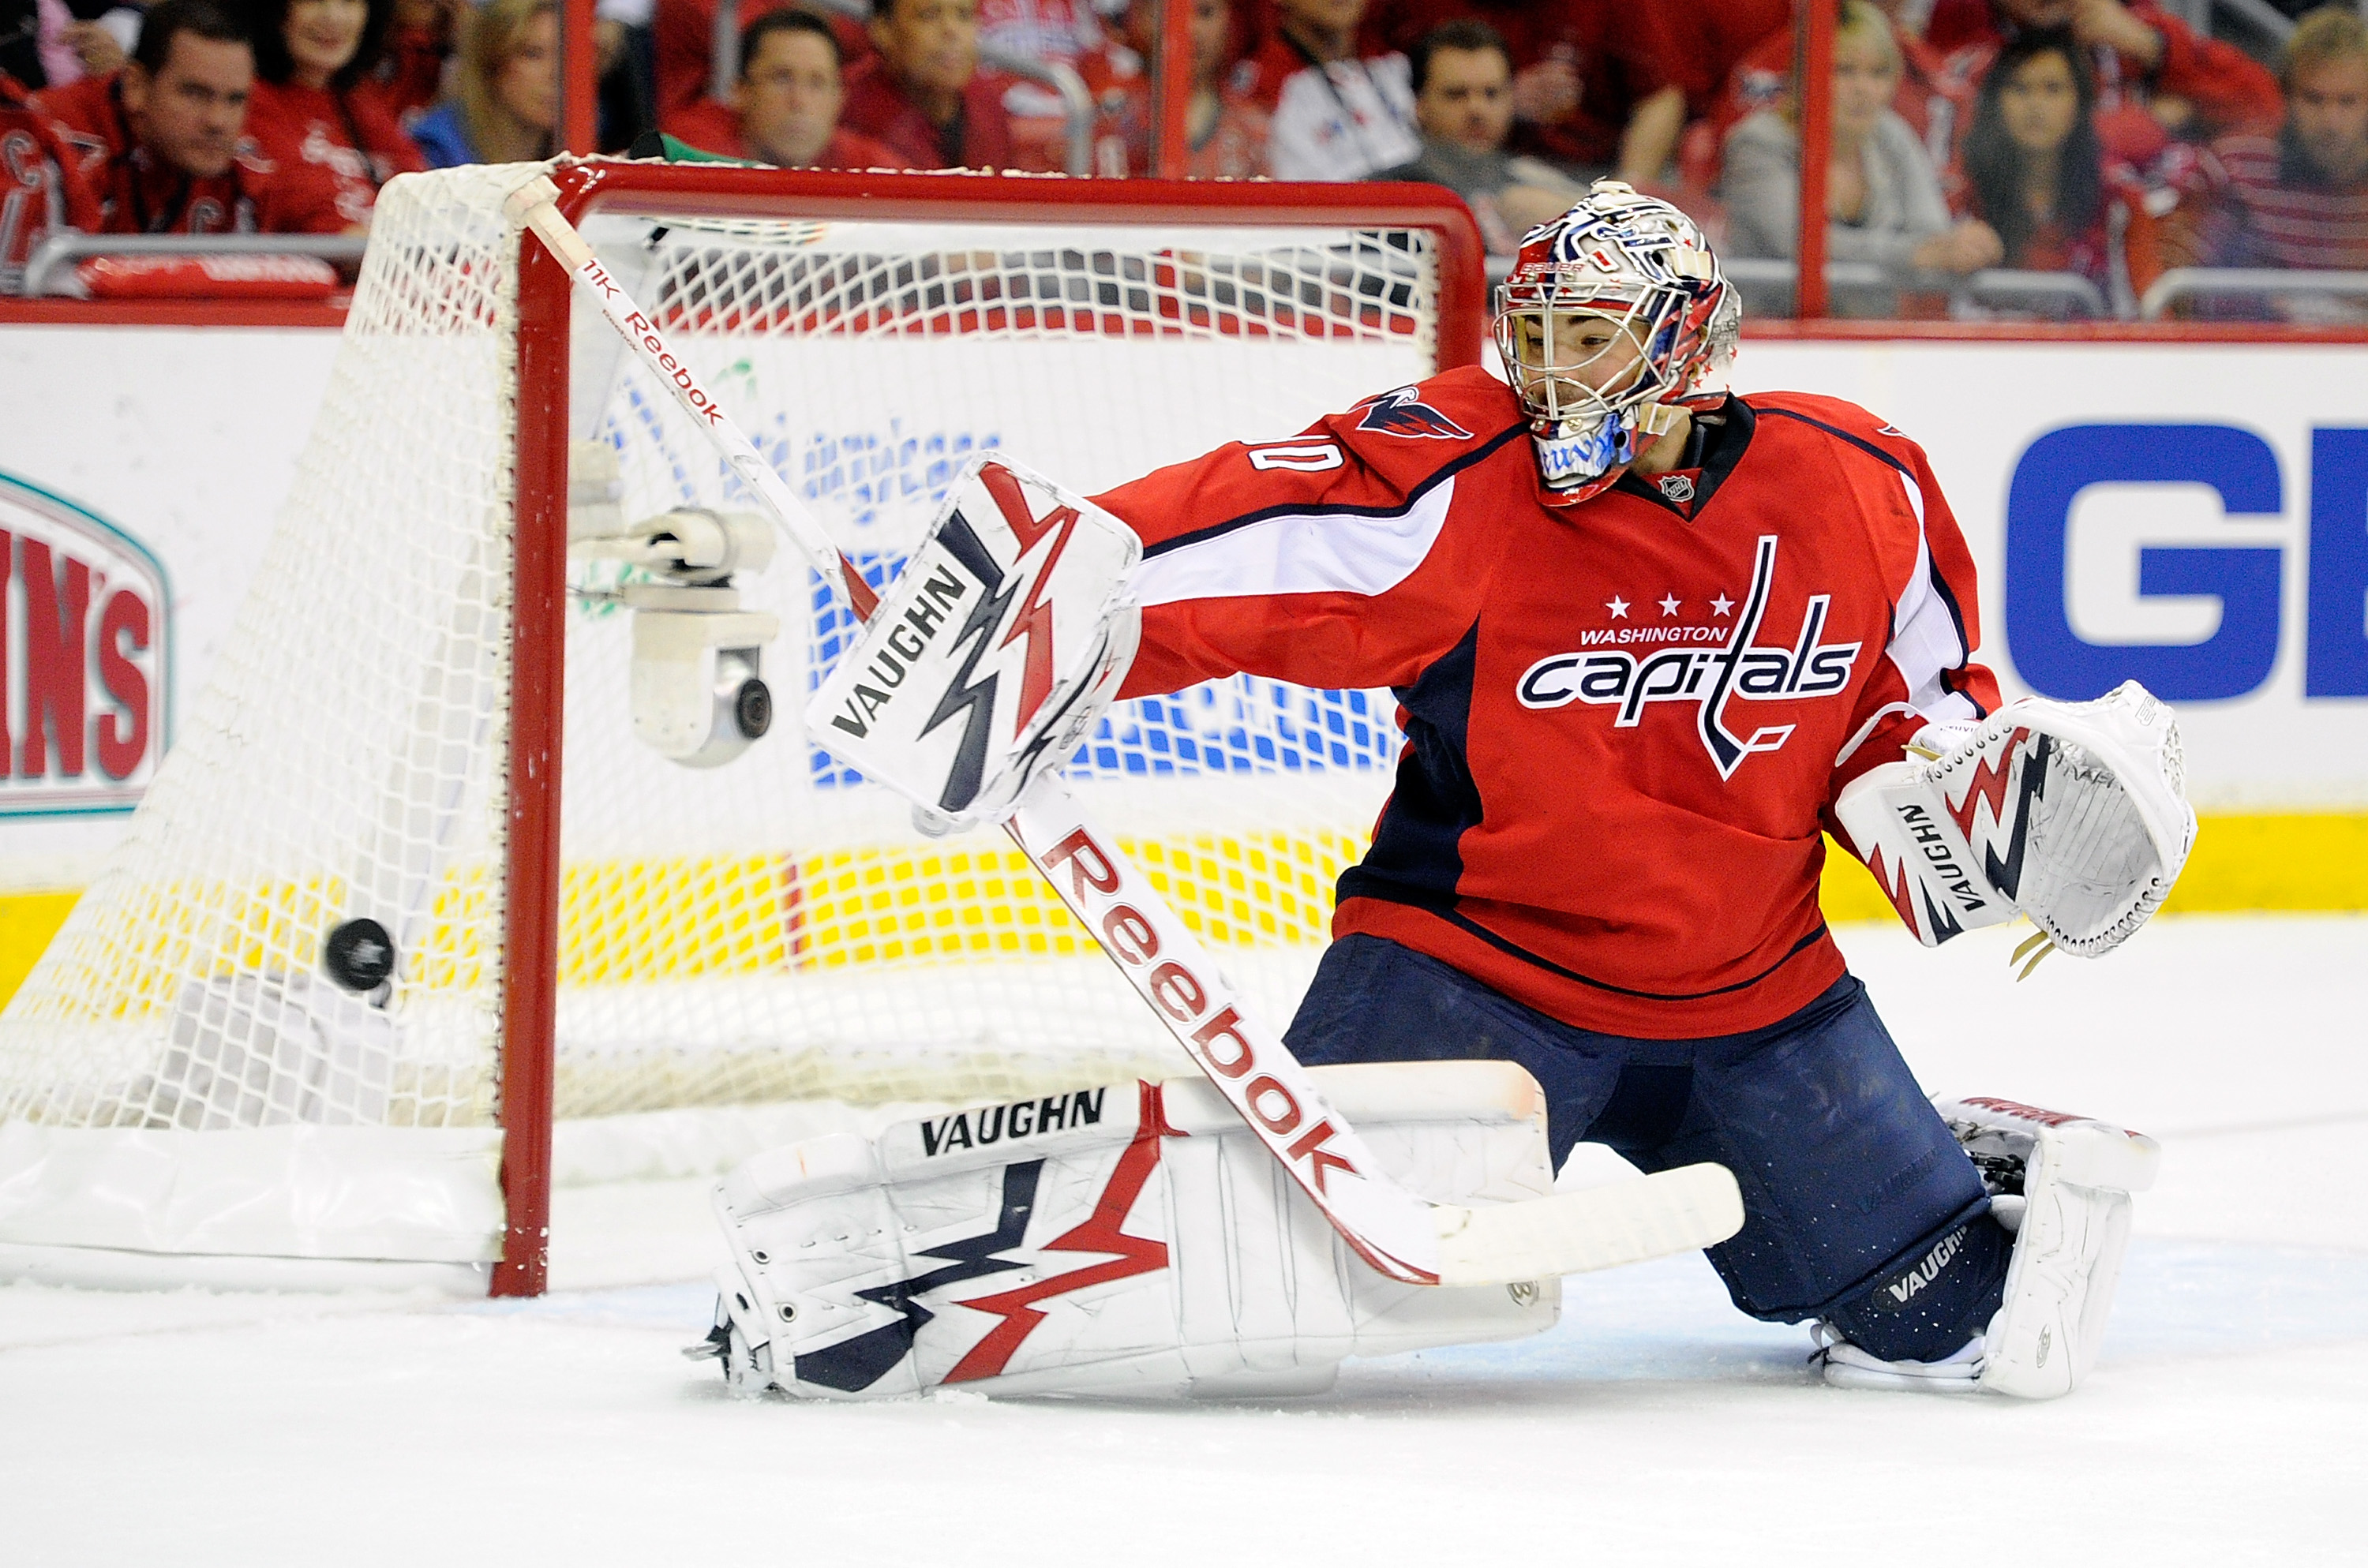 WASHINGTON, DC - APRIL 29:  Michal Neuvirth #30 of the Washington Capitals makes a save against the Tampa Bay Lightning during Game One of the Eastern Conference Semifinal during the 2011 NHL Stanley Cup Finals at the Verizon Center on April 29, 2011 in W